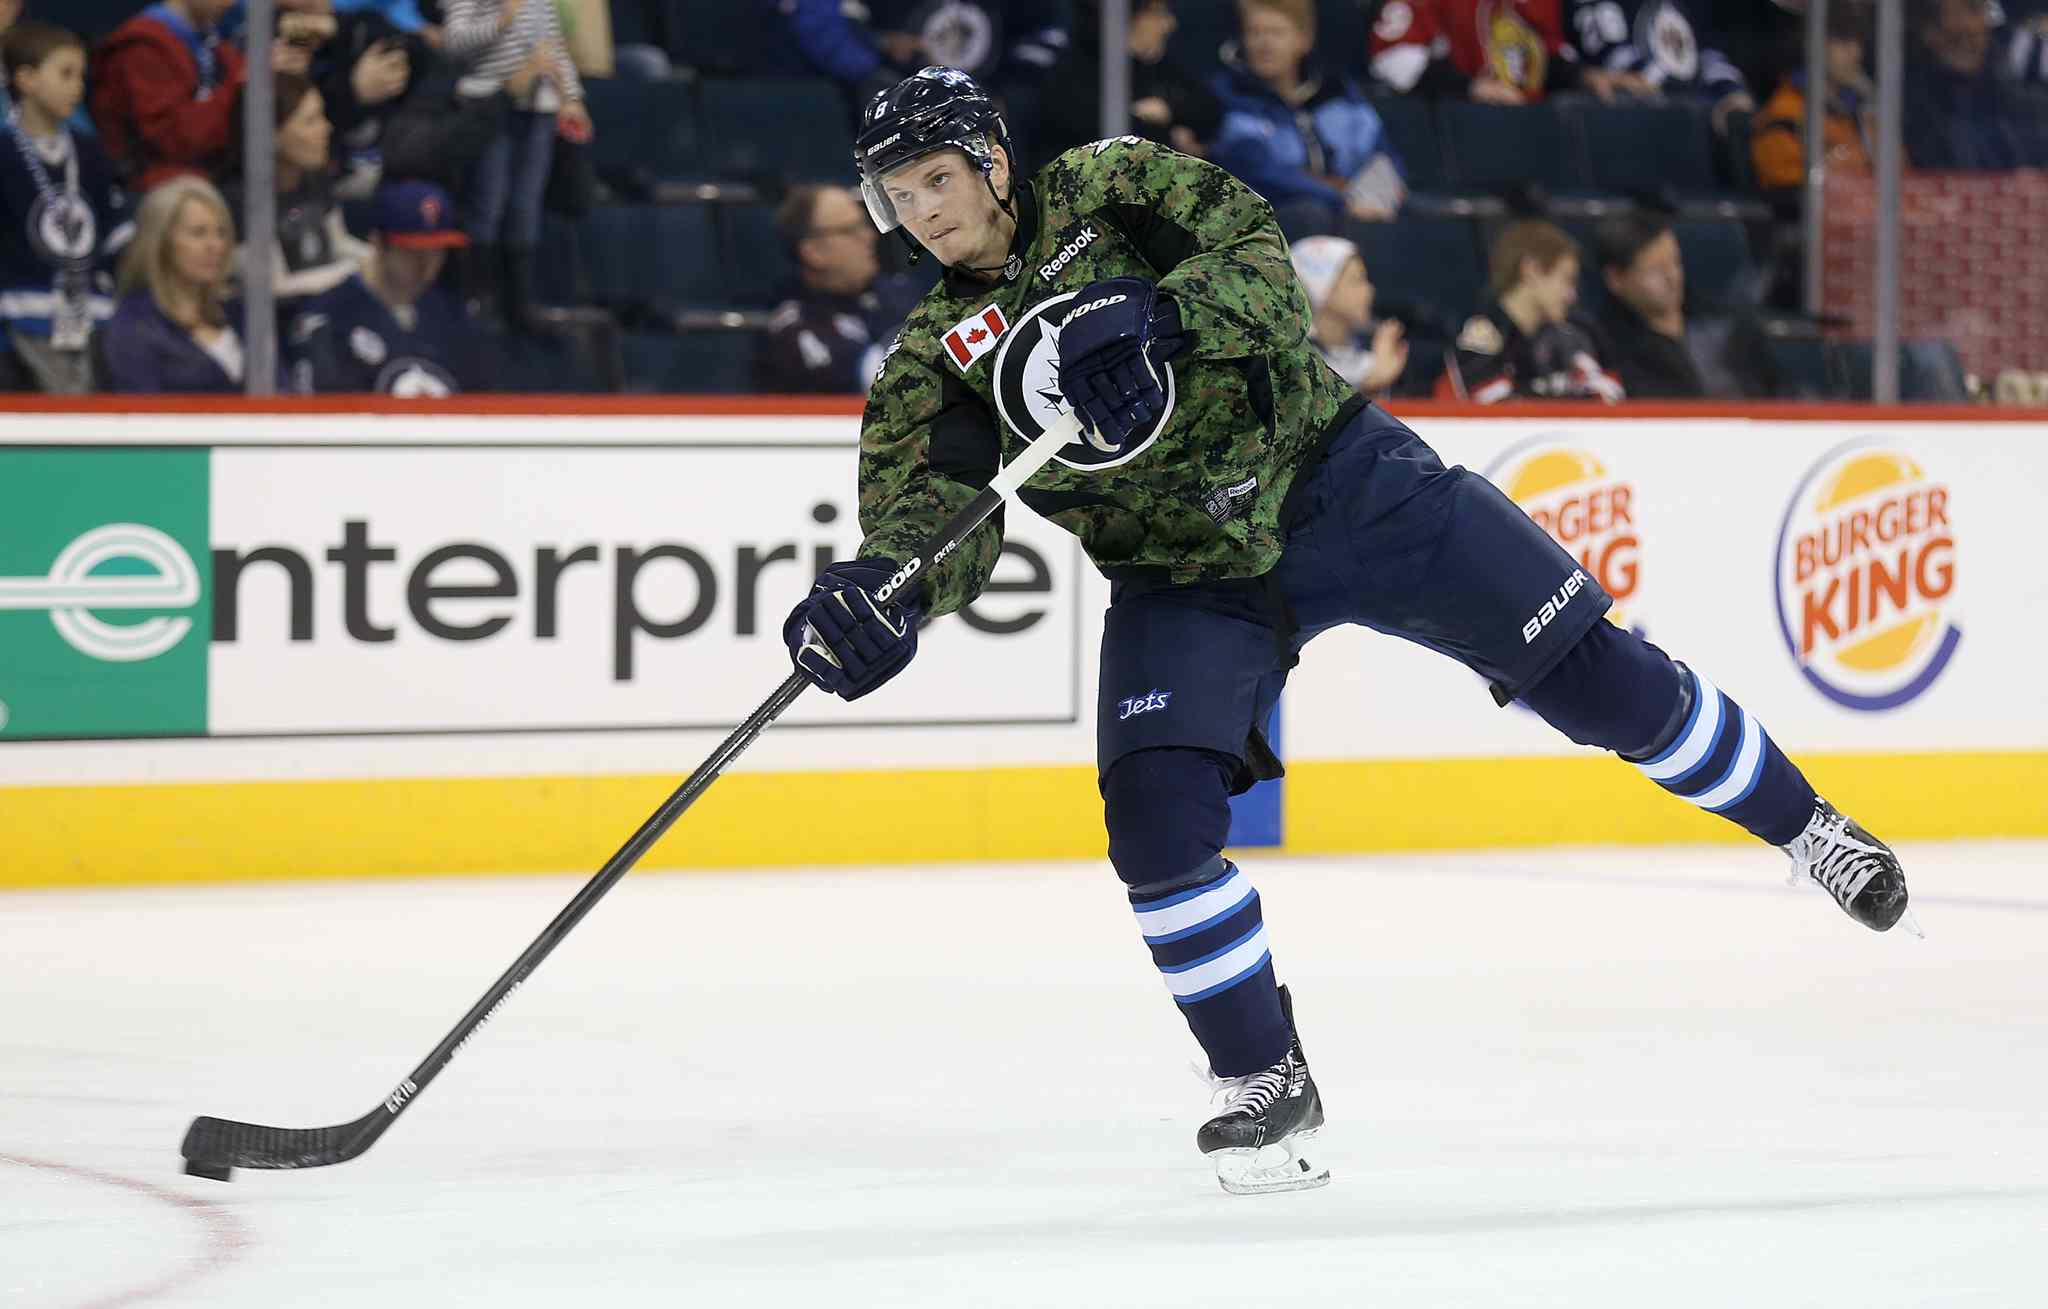 Winnipeg Jets' Jacob Trouba (8) fires a shot during warmup while wearing a camouflage jersey on Military Appreciation day prior to the game against the Ottawa Senators', Saturday, March 8, 2014.